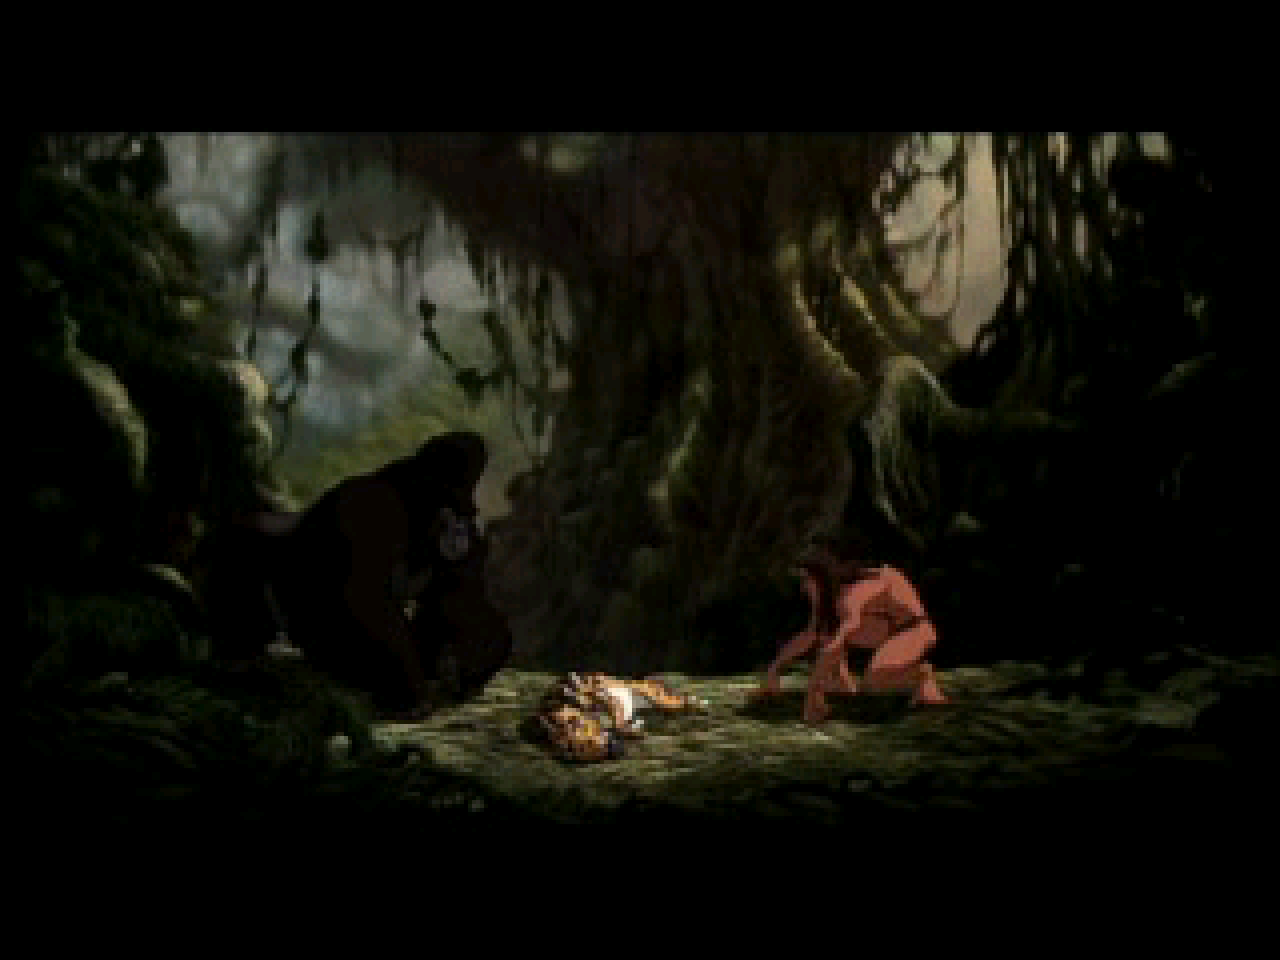 https://s3.eu-west-3.amazonaws.com/games.anthony-dessalles.com/Disney's Tarzan PS1 2020 - Screenshots/Disney's Tarzan-201122-174632.png